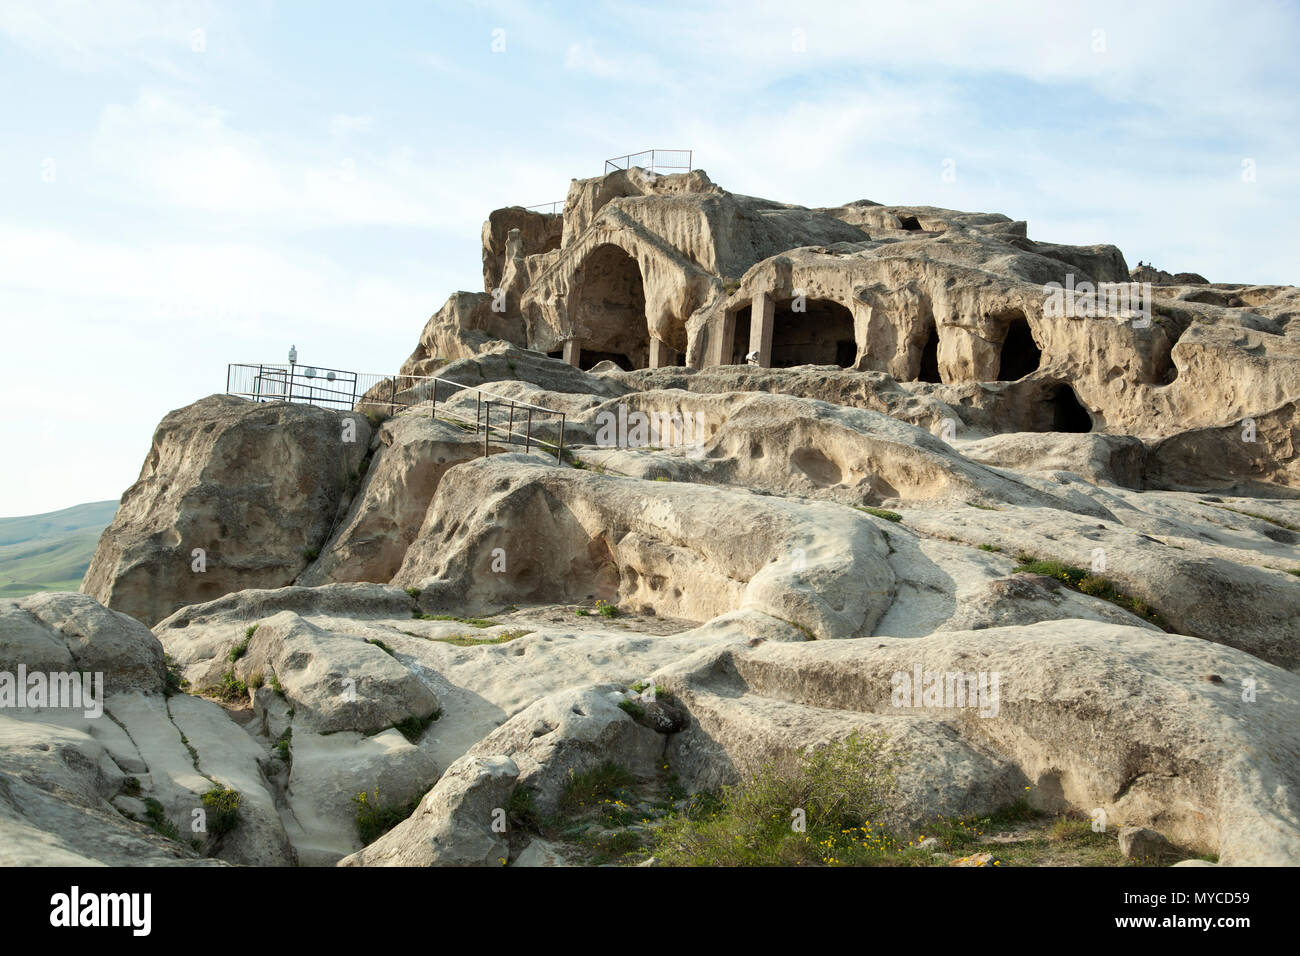 People lived in Uplistsikhe rock-cut city since Early Iron Age and is the oldest human settlement in Georgia. - Stock Image